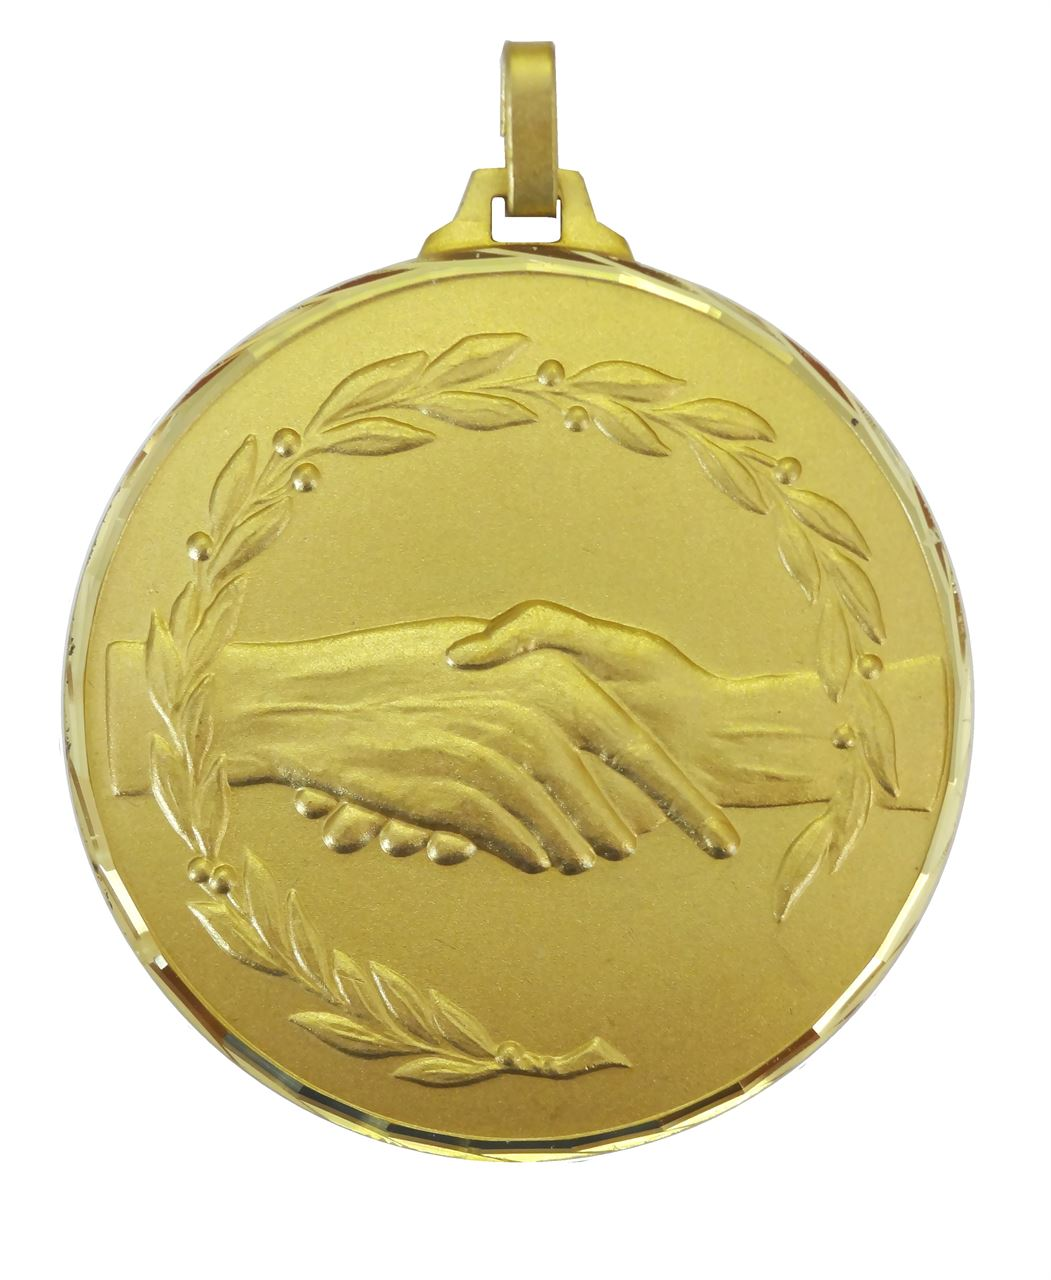 Gold Faceted Fair Play Medal (size: 52mm and 70mm) - 360F